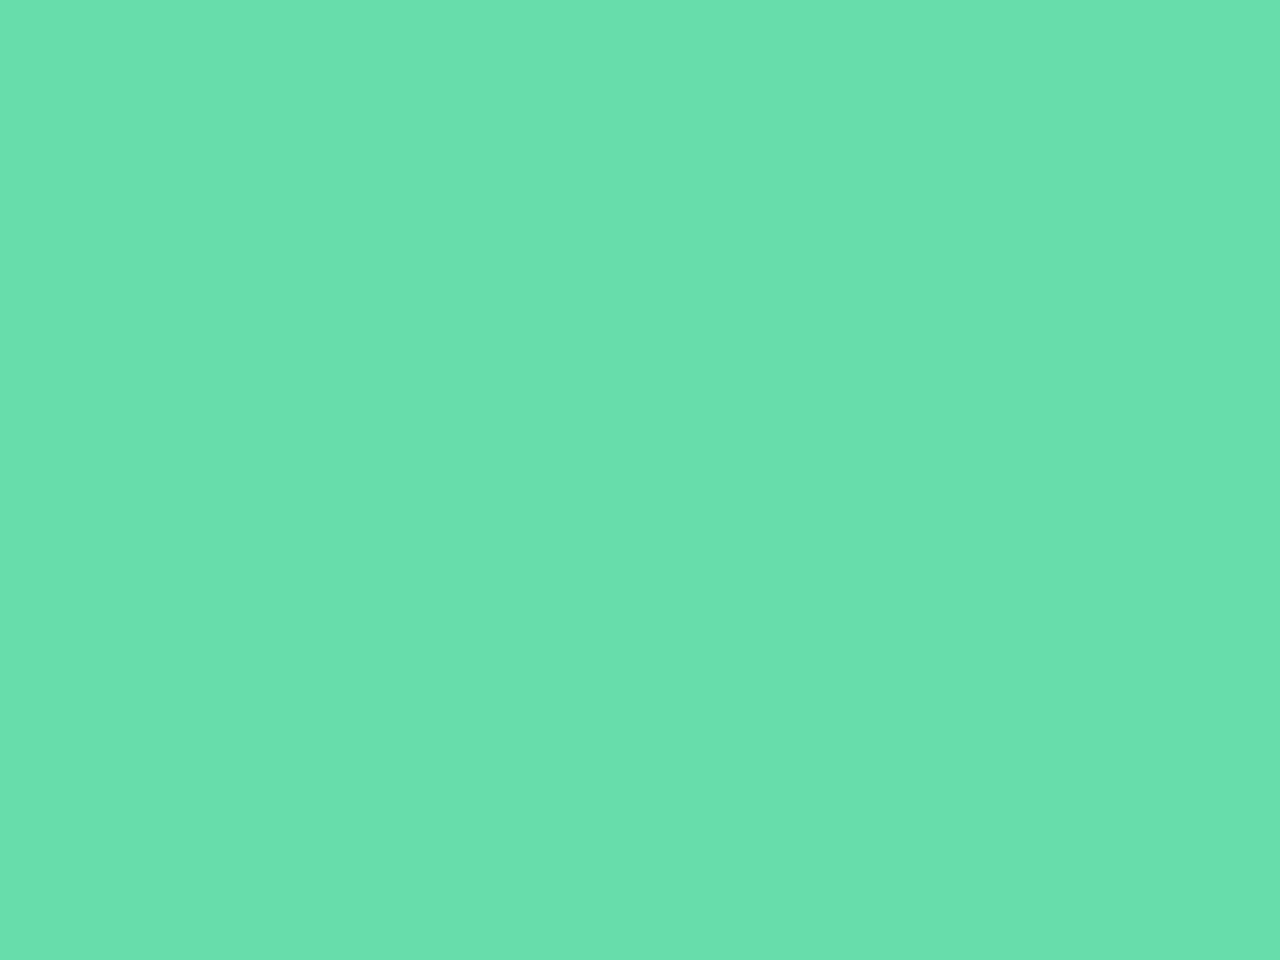 1280x960 Medium Aquamarine Solid Color Background